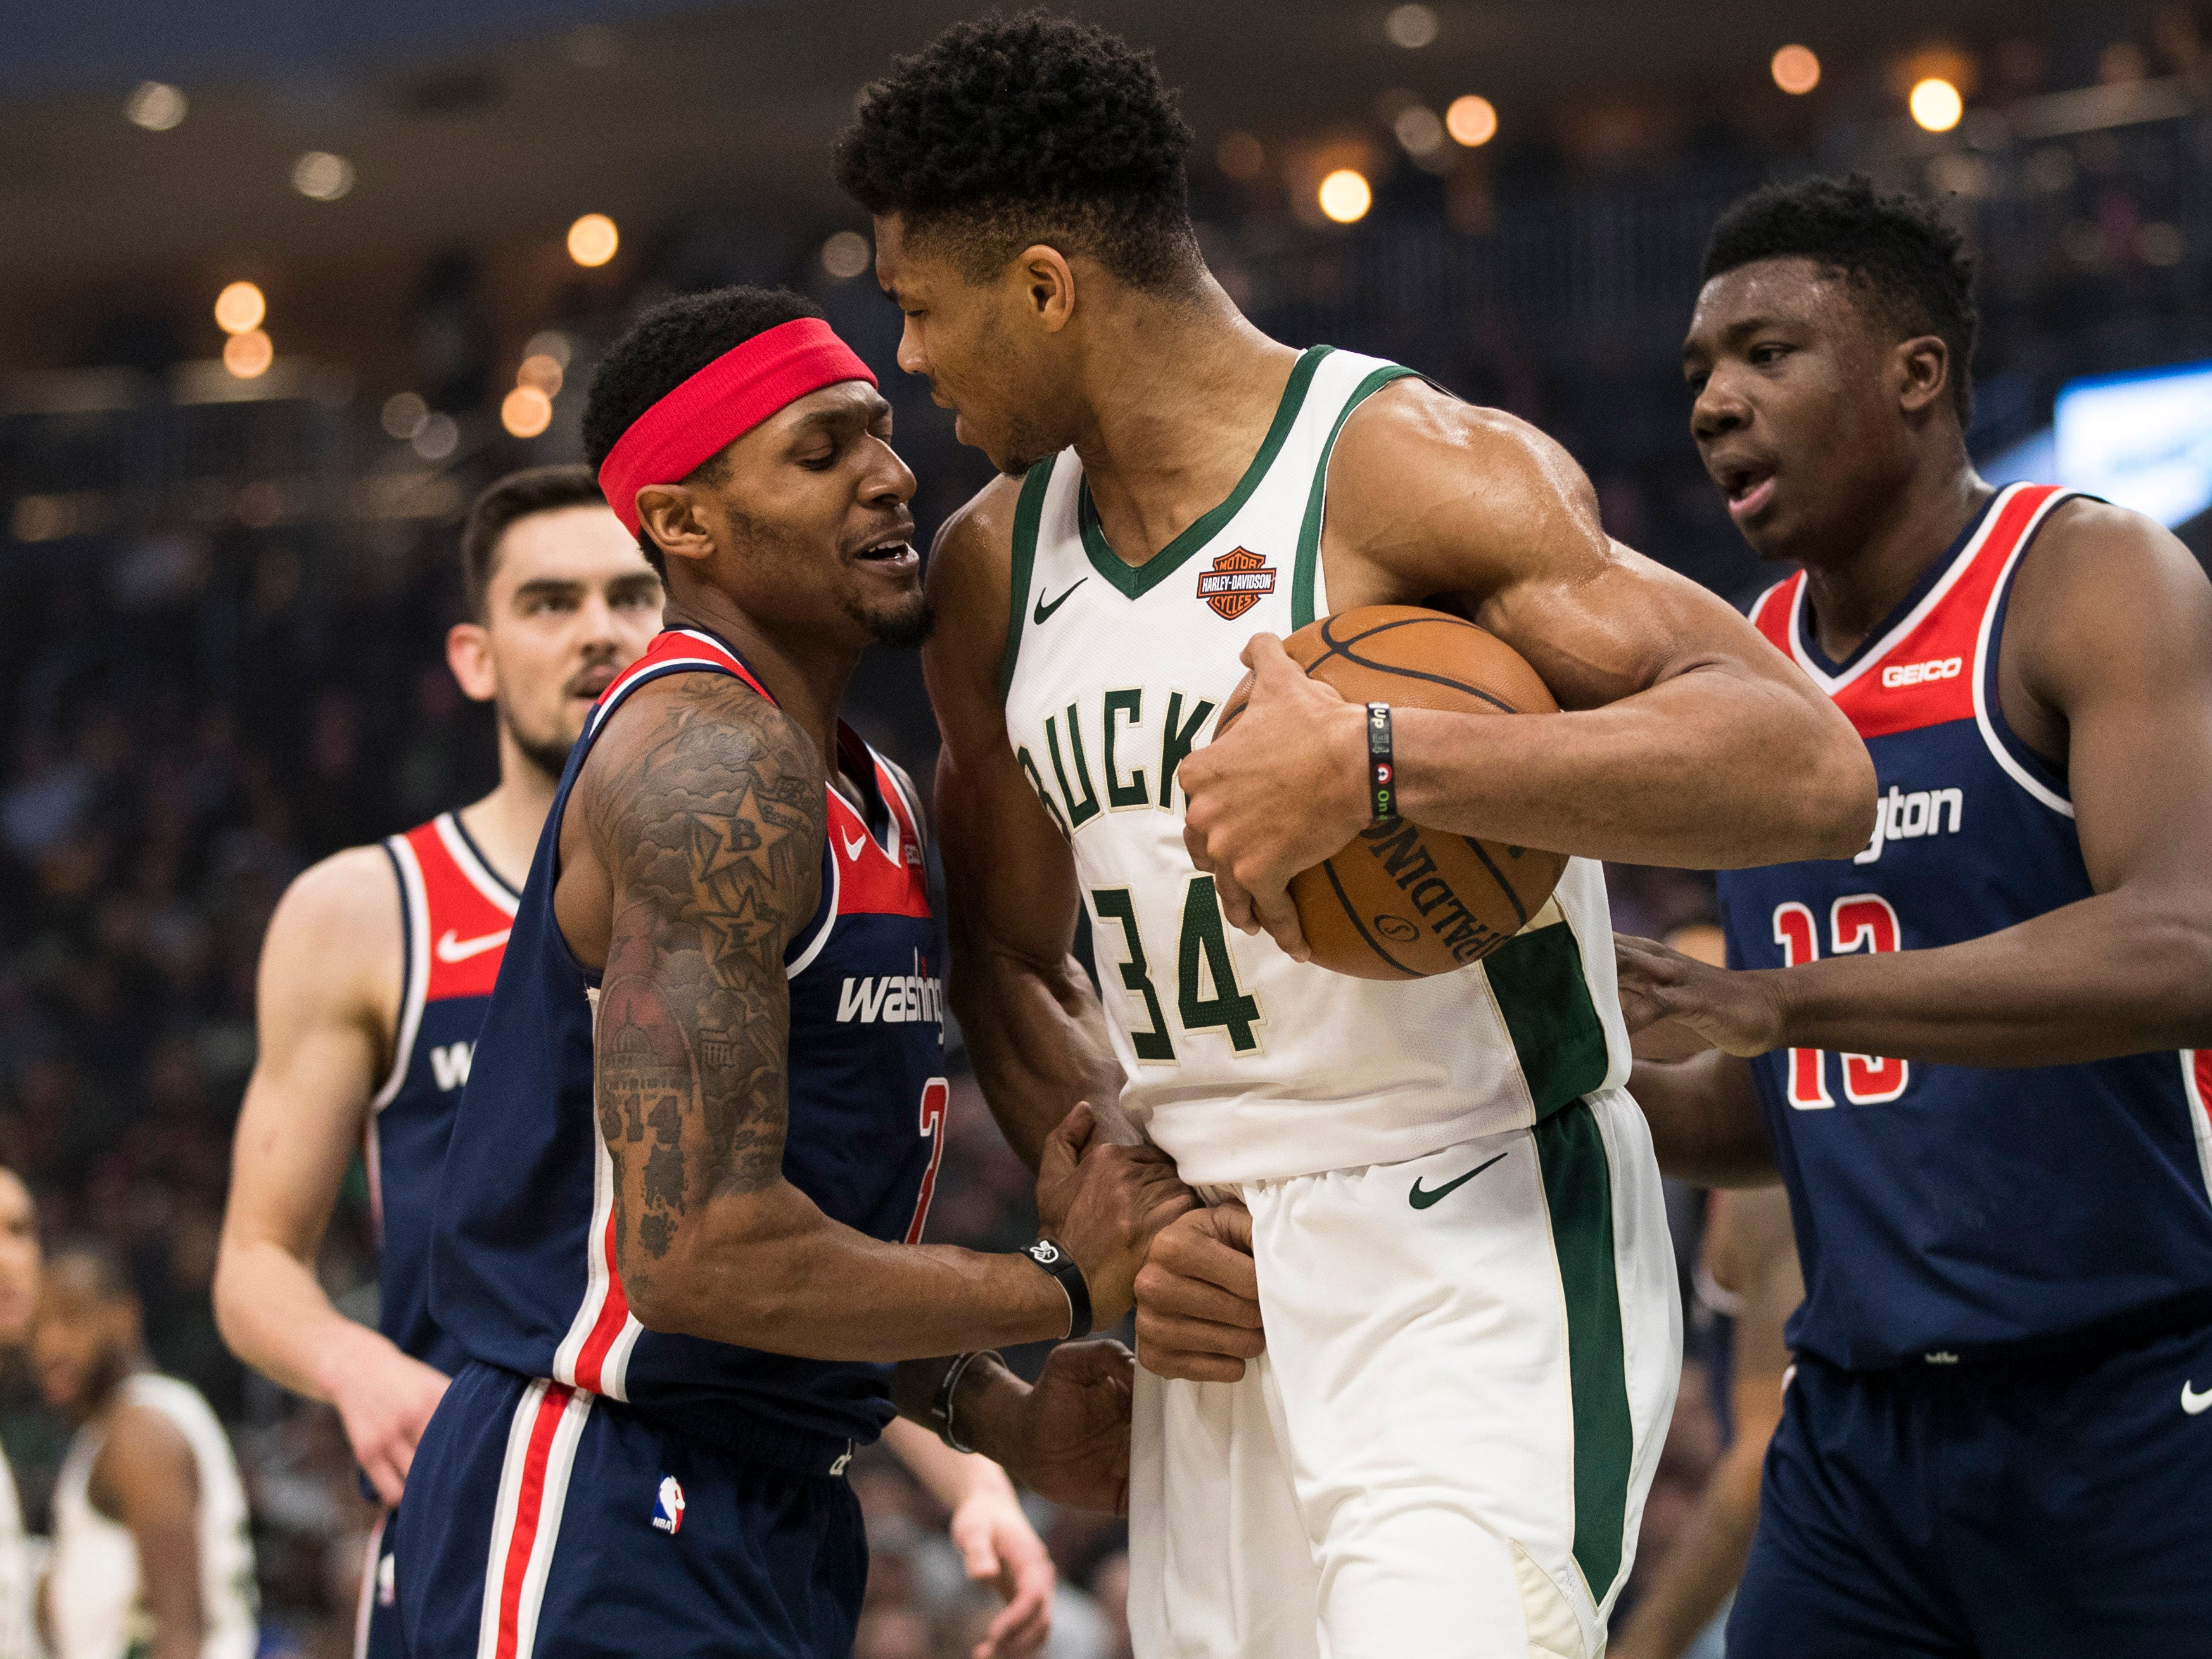 Bucks forward Giannis Antetokounmpo and Wizards guard Bradley Beal get into it a little bit during the first quarter on Wednesday night.